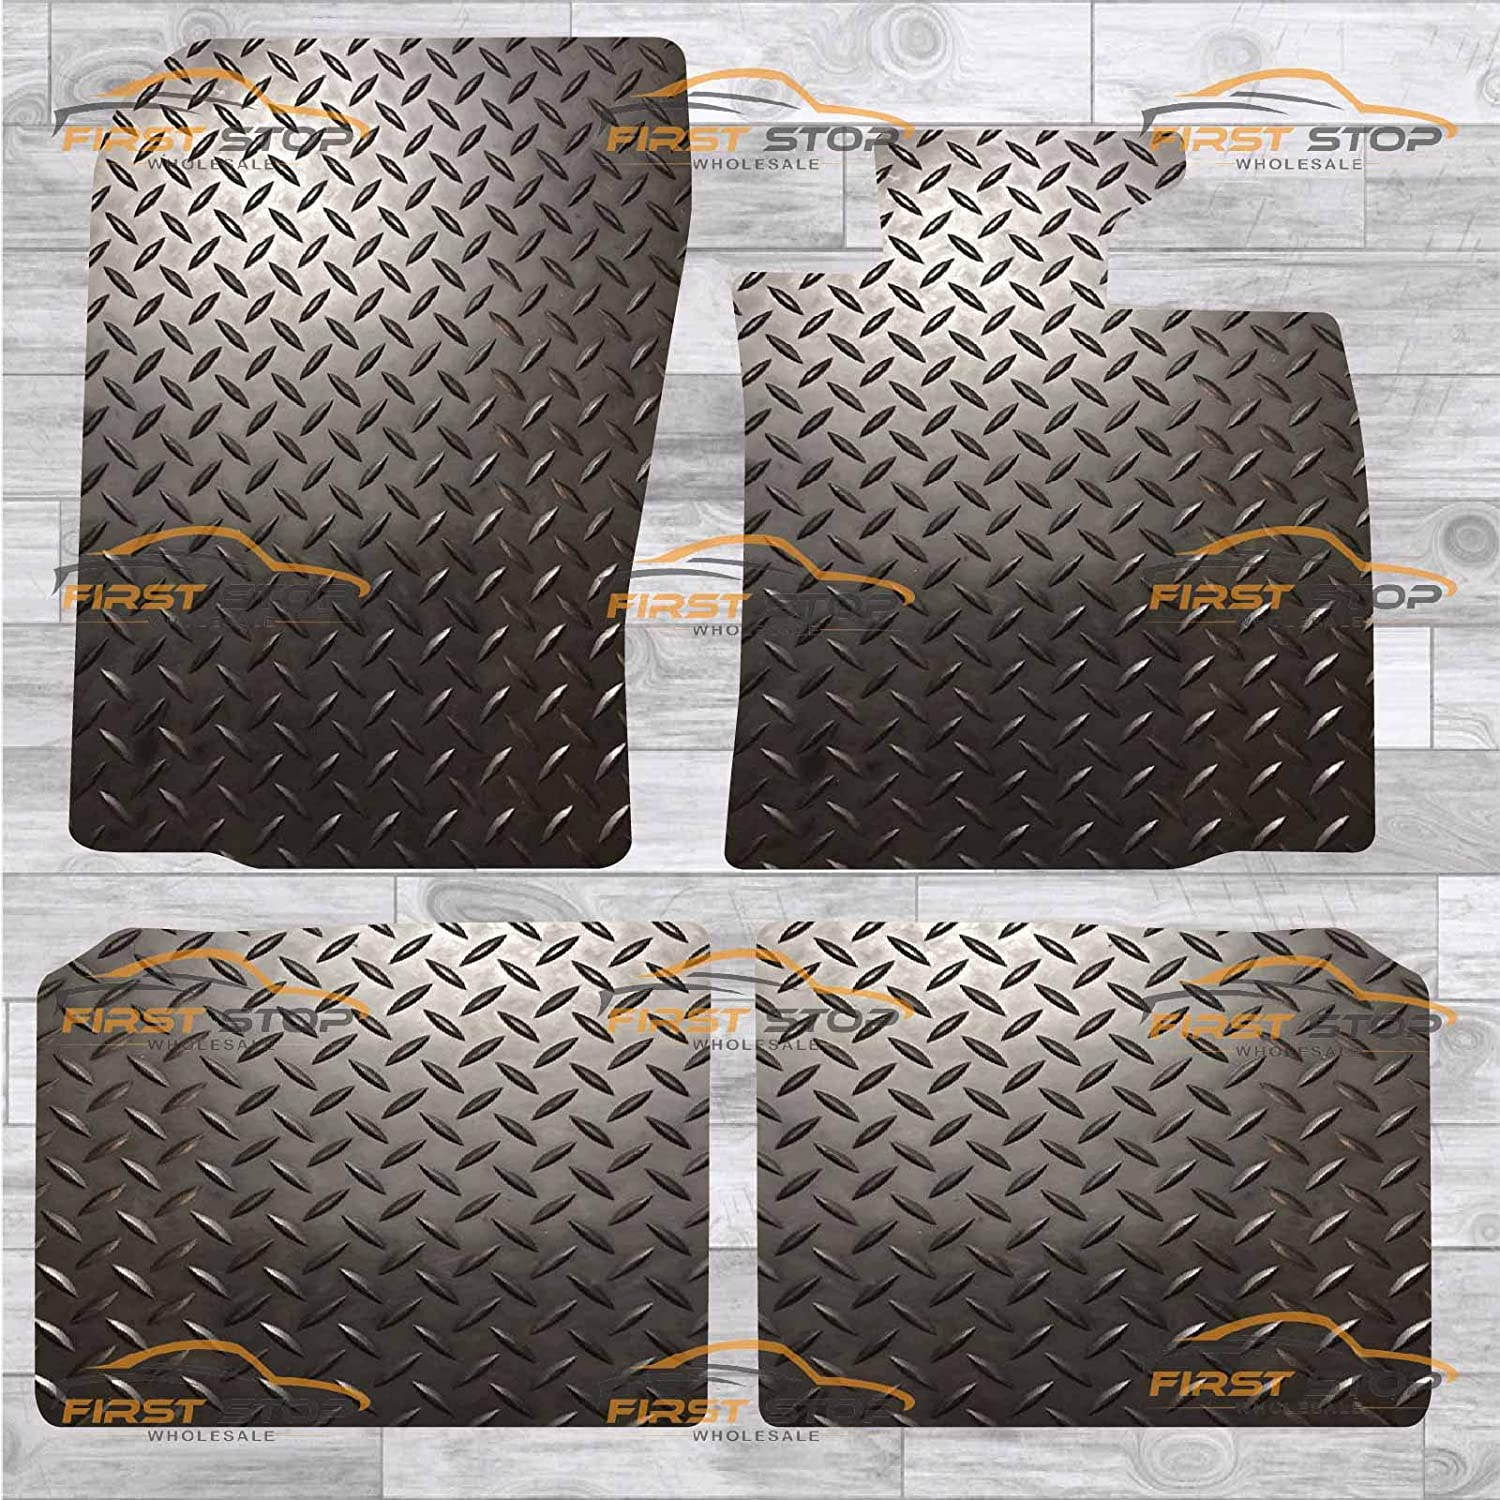 FSW Mini Countryman Sticky Pads Fixings R60 Tailored 5MM Waterproof Rubber EXTRA Heavy Duty Car Floor Mats